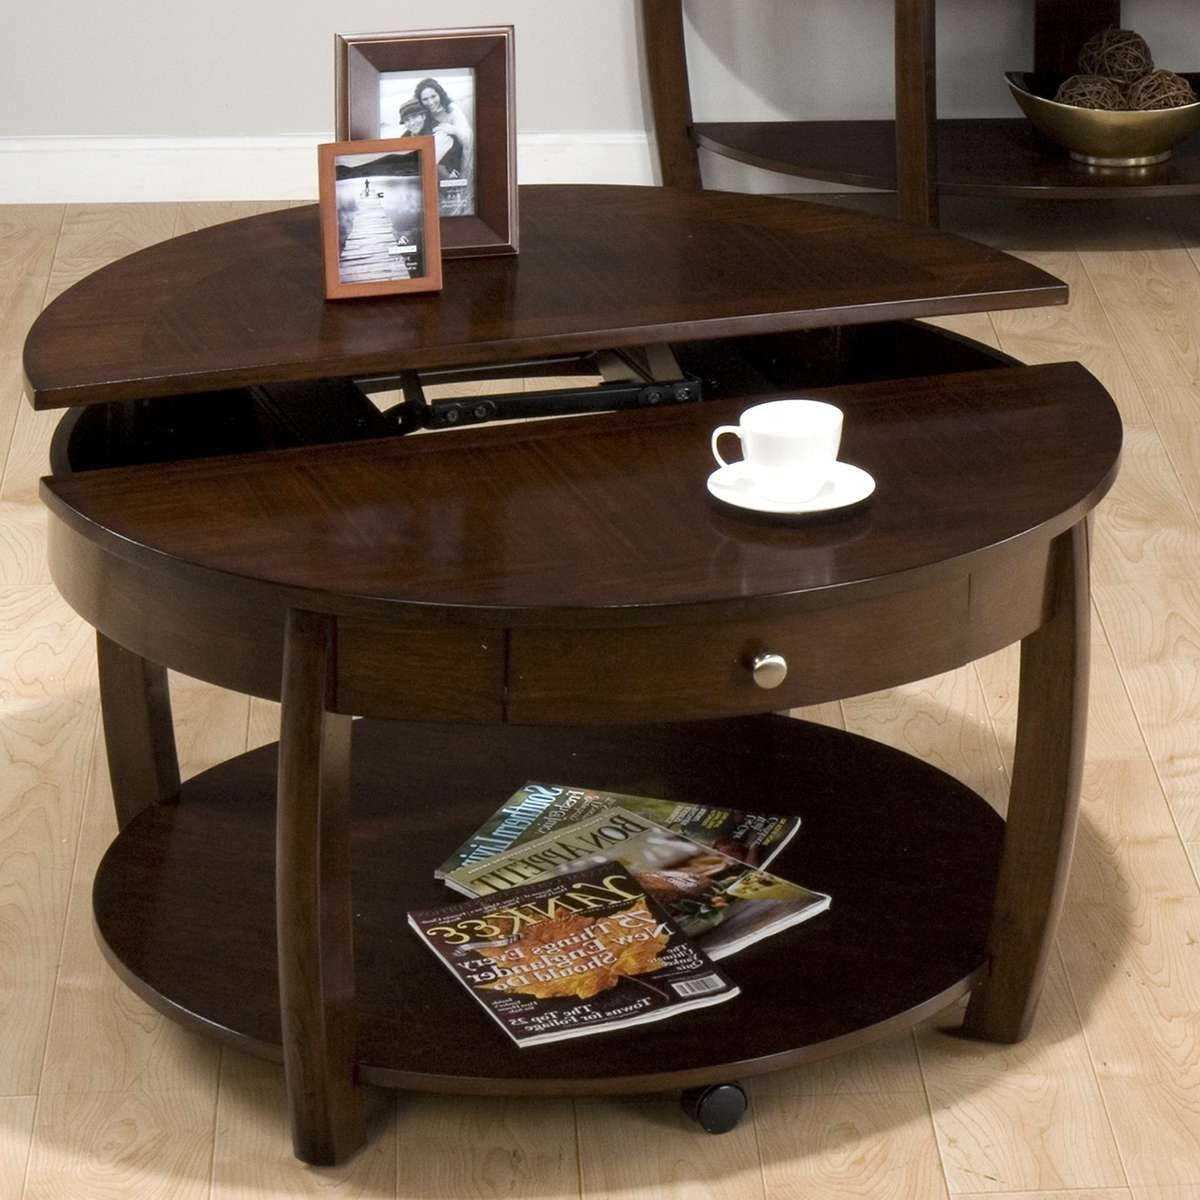 Most Recent Coffee Tables With Lift Top And Storage With Coffee Tables Ideas: Coffee Table With Lift Top And Storage Lift (View 15 of 20)